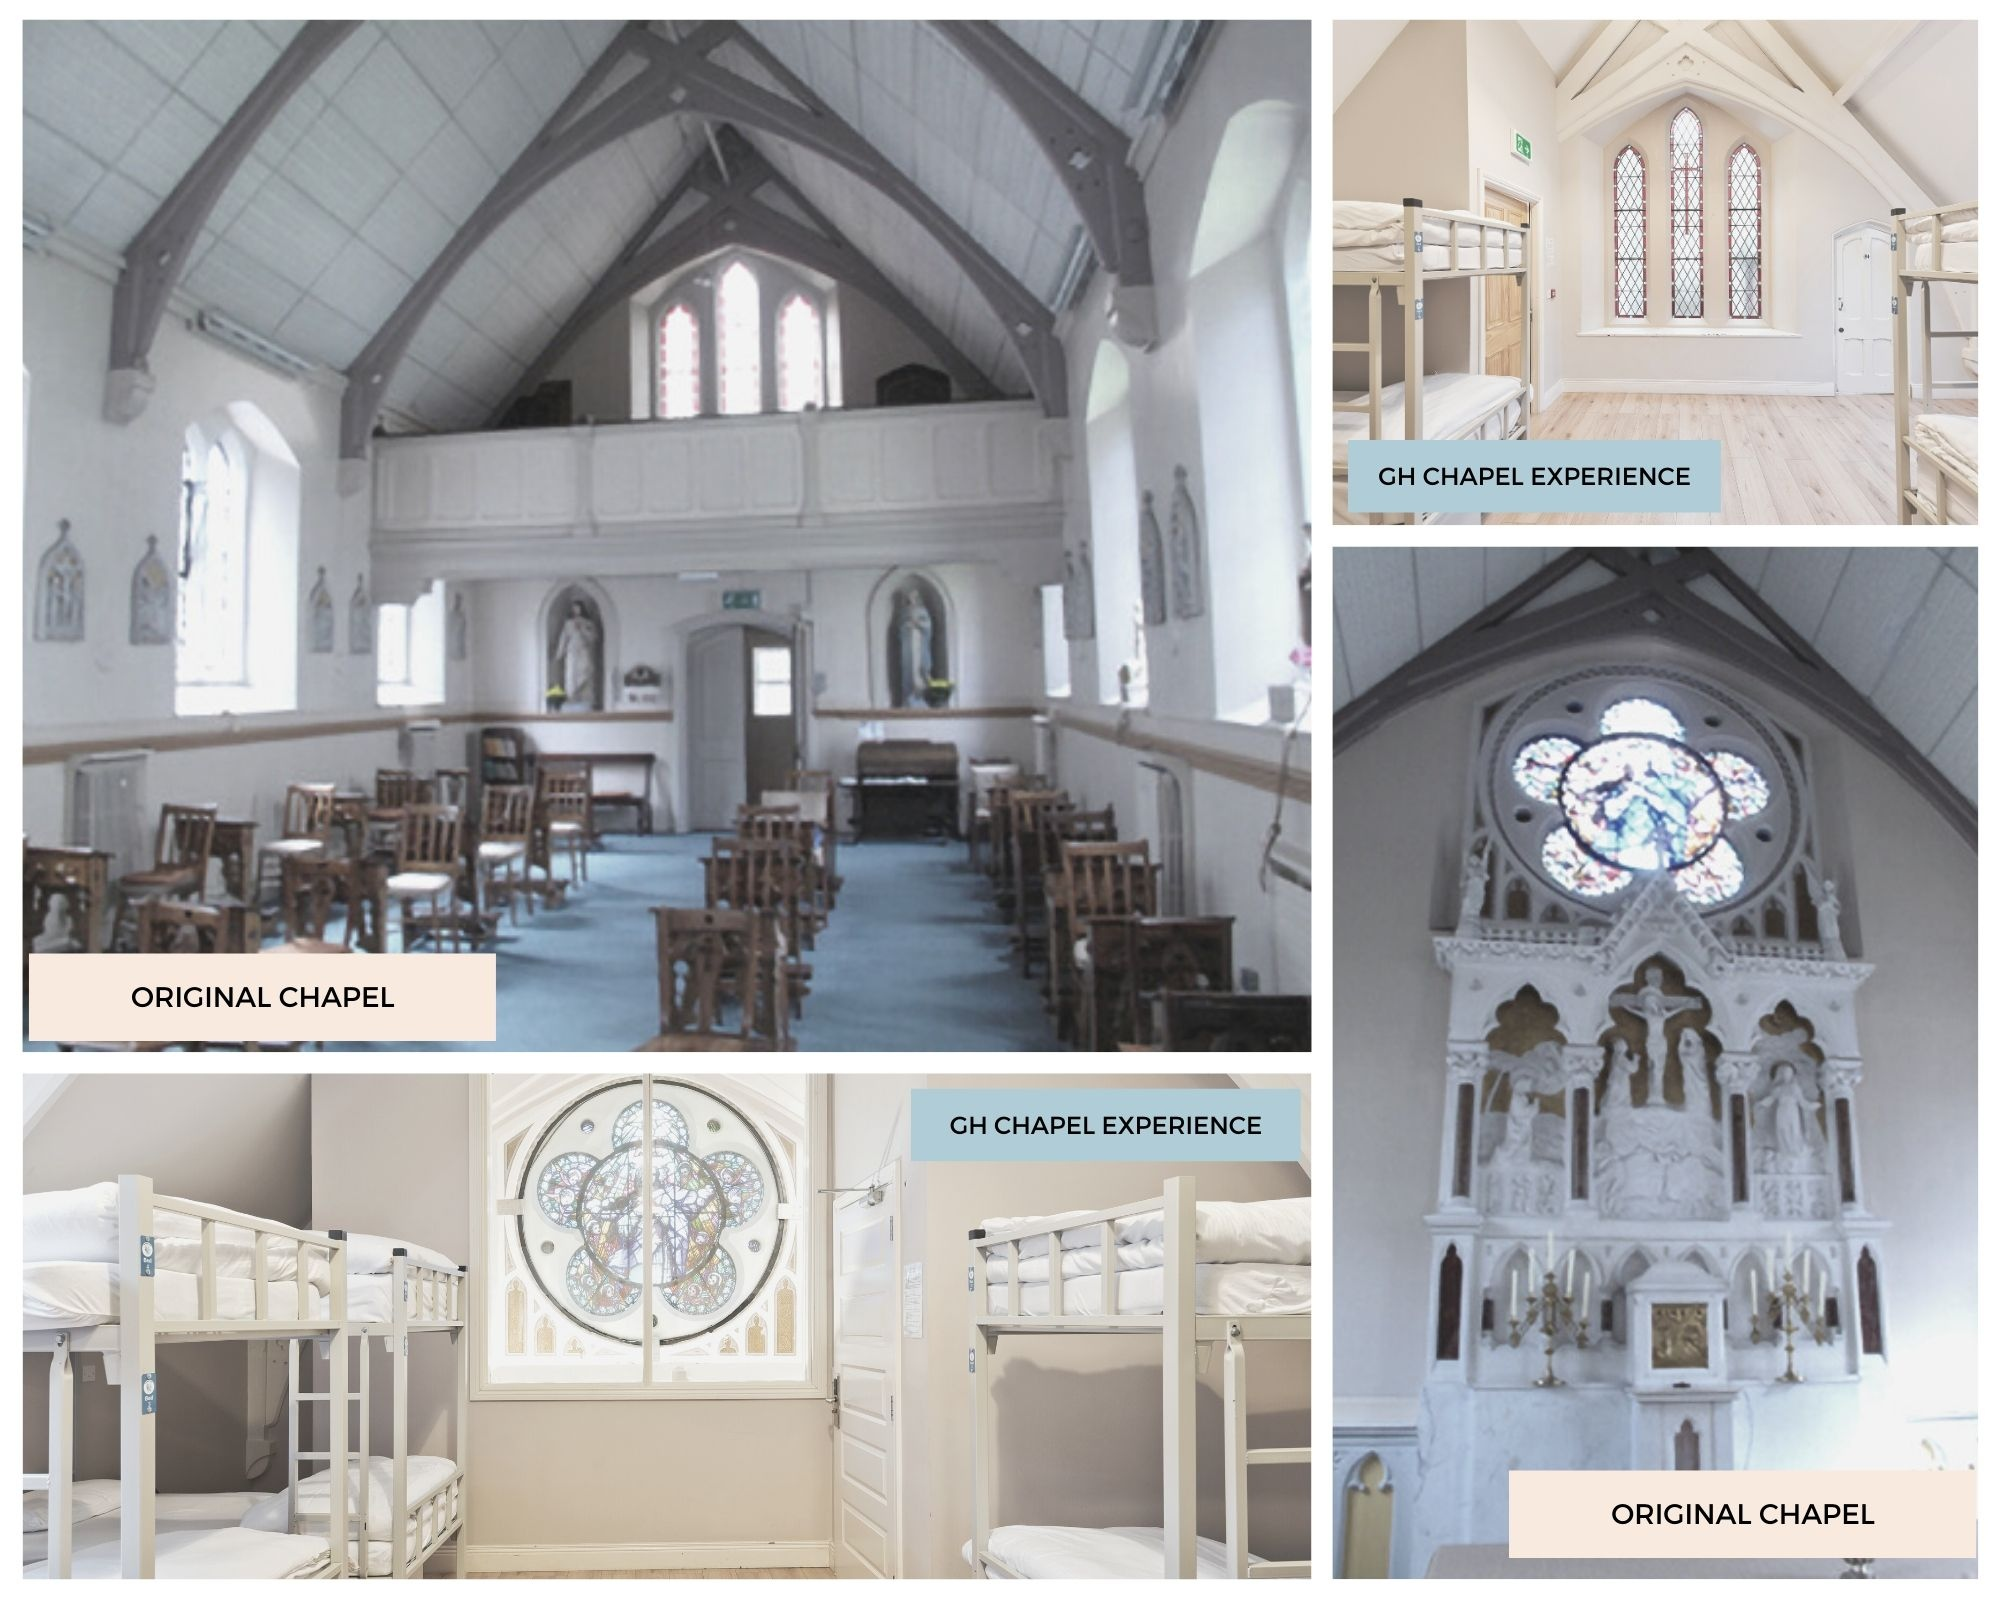 Images comparing original Chapel with Chapel Experience at the Gardiner House Hostel